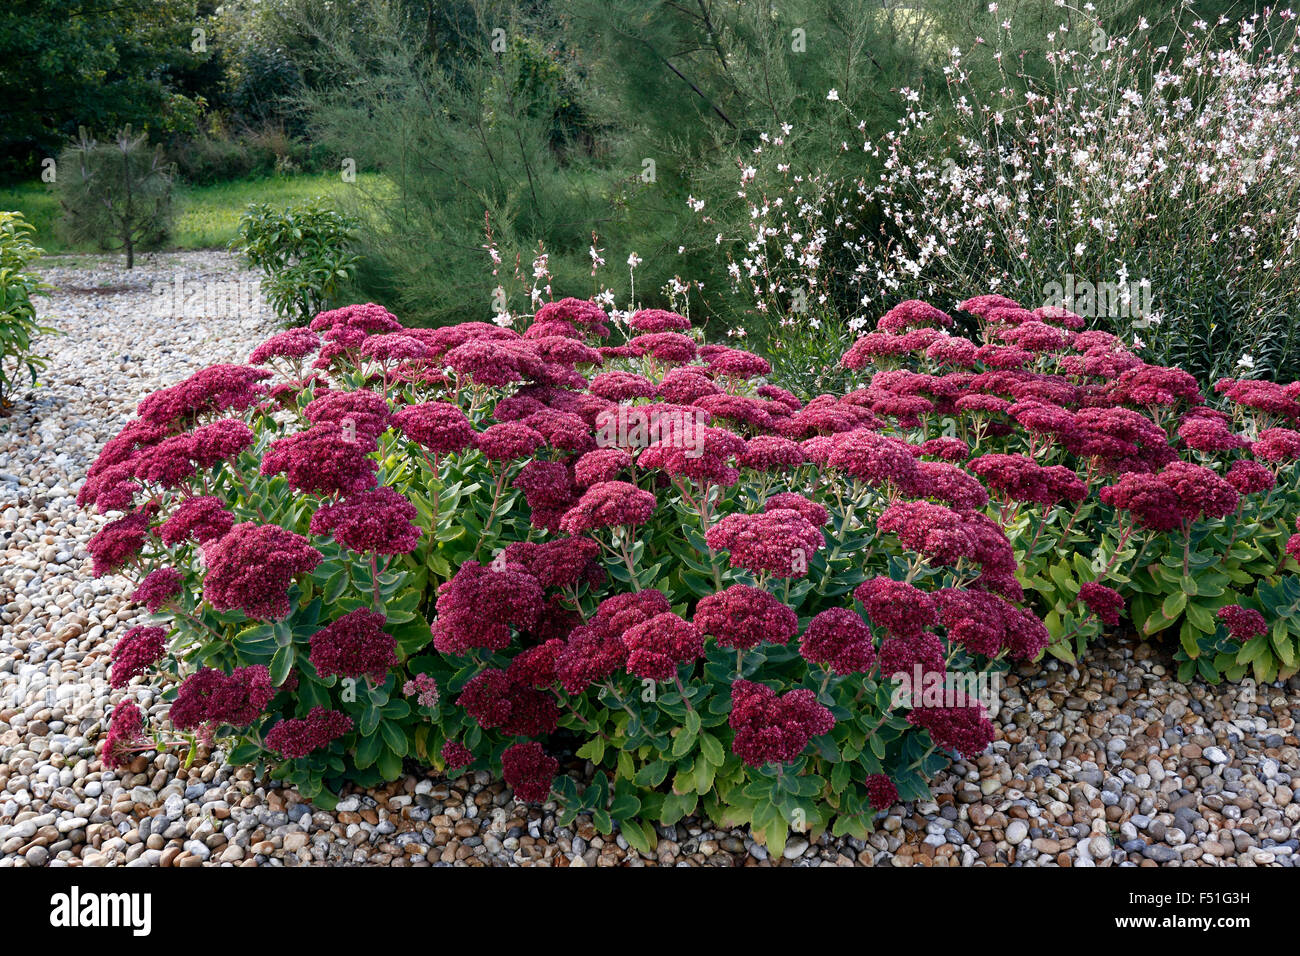 sedum herbstfreude autumn joy stonecrop stock photo 89159717 alamy. Black Bedroom Furniture Sets. Home Design Ideas